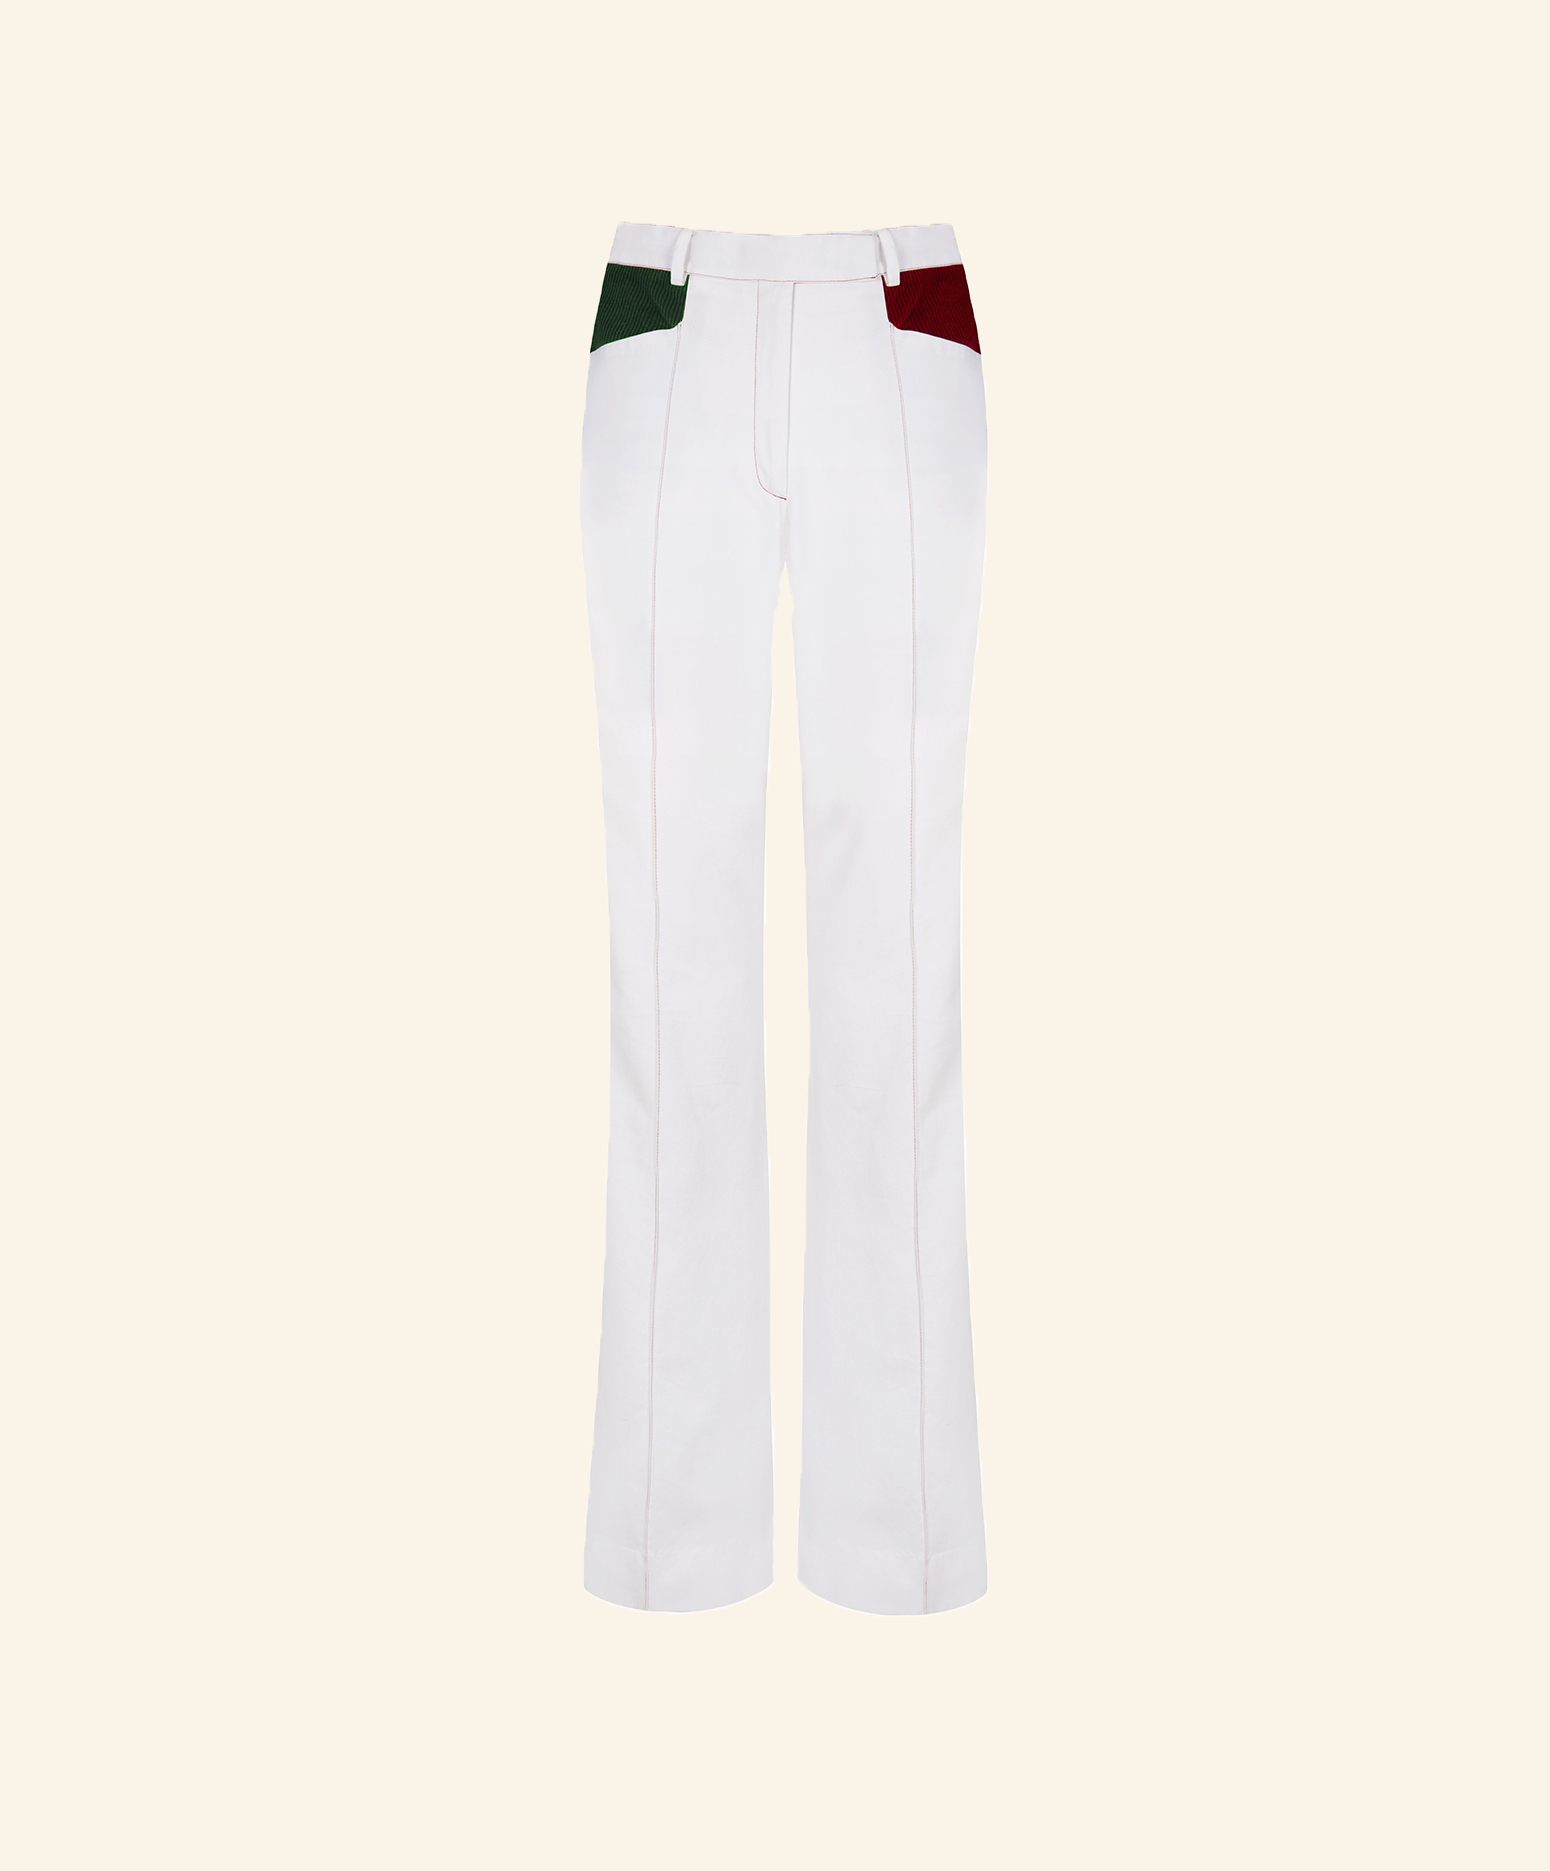 White Trousers Patched Pockets